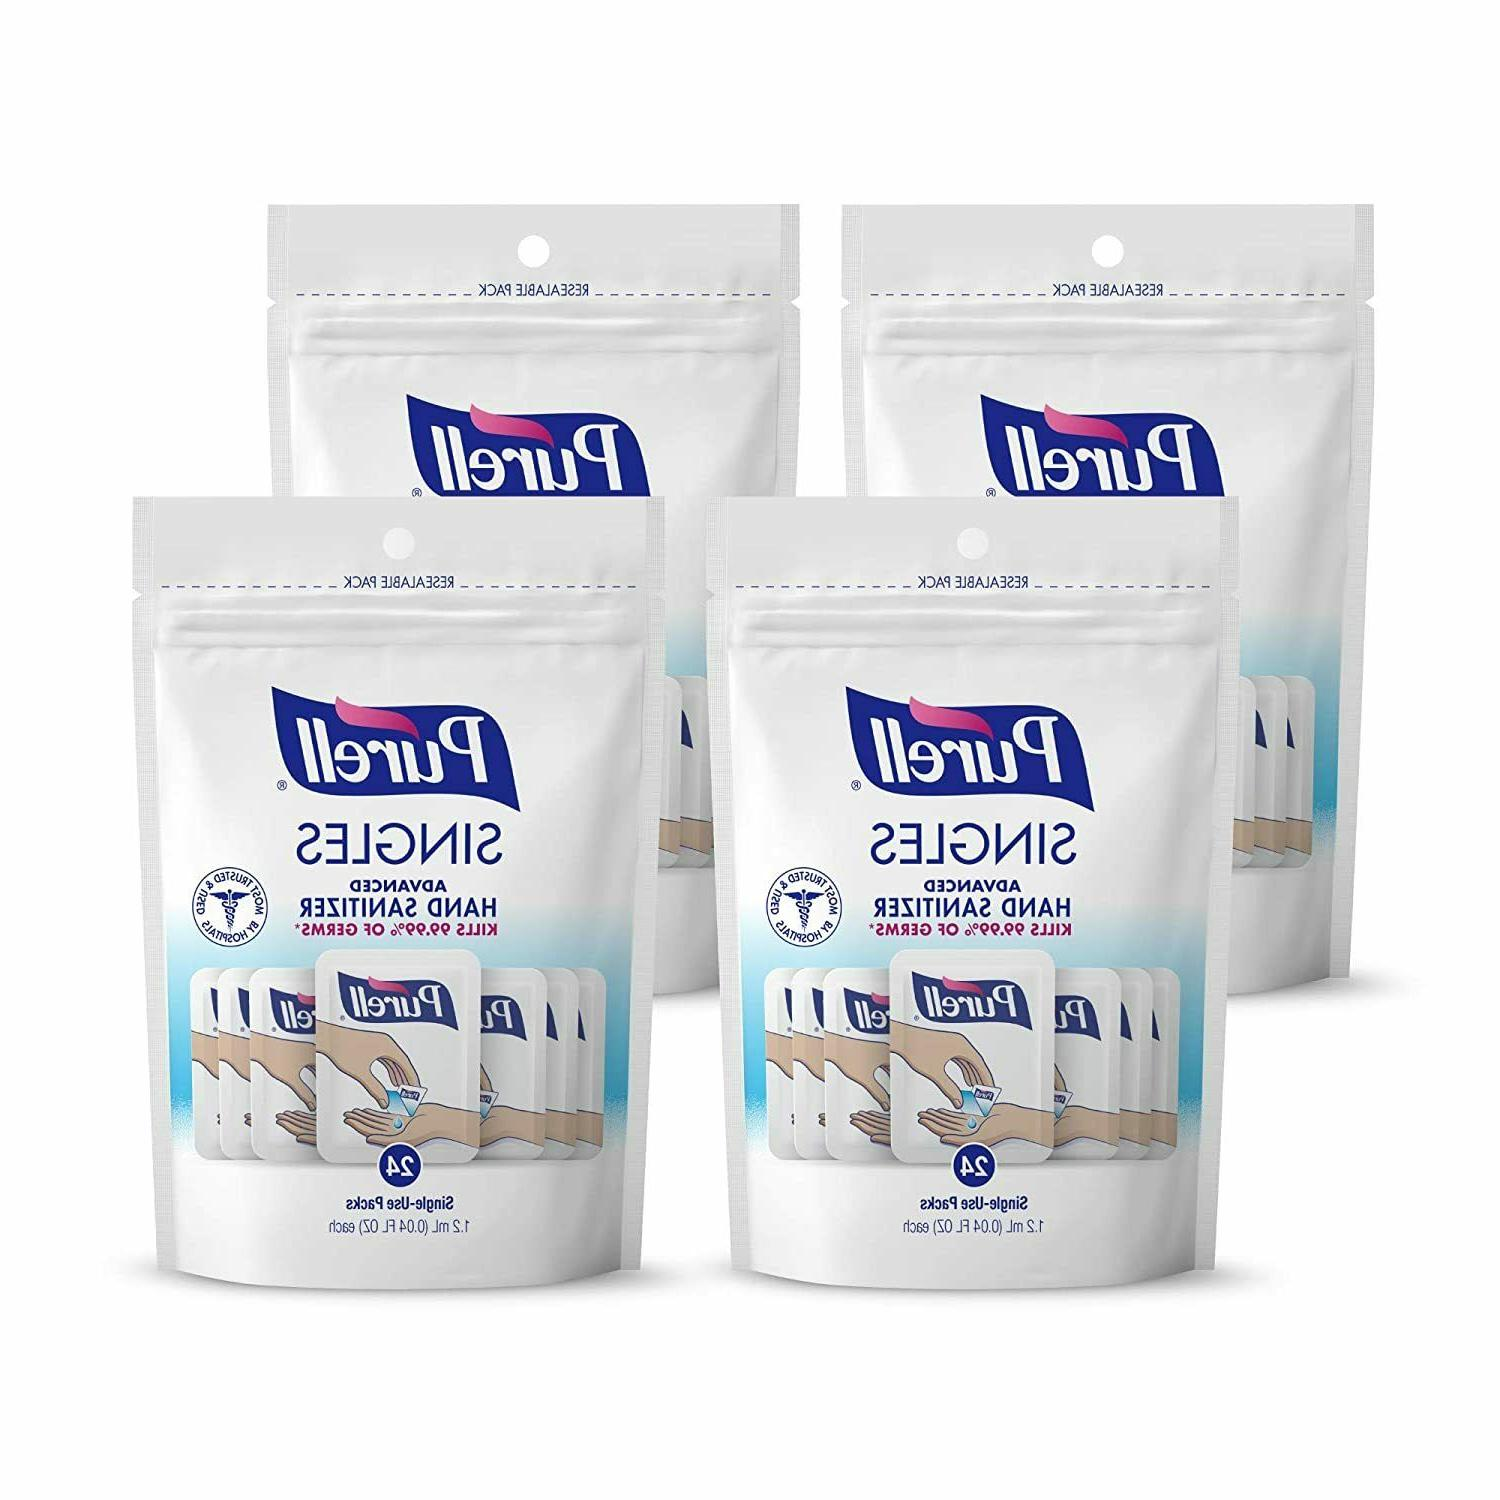 PURELL Sanitizer Sanitizing Gel Packets 24/Pouch